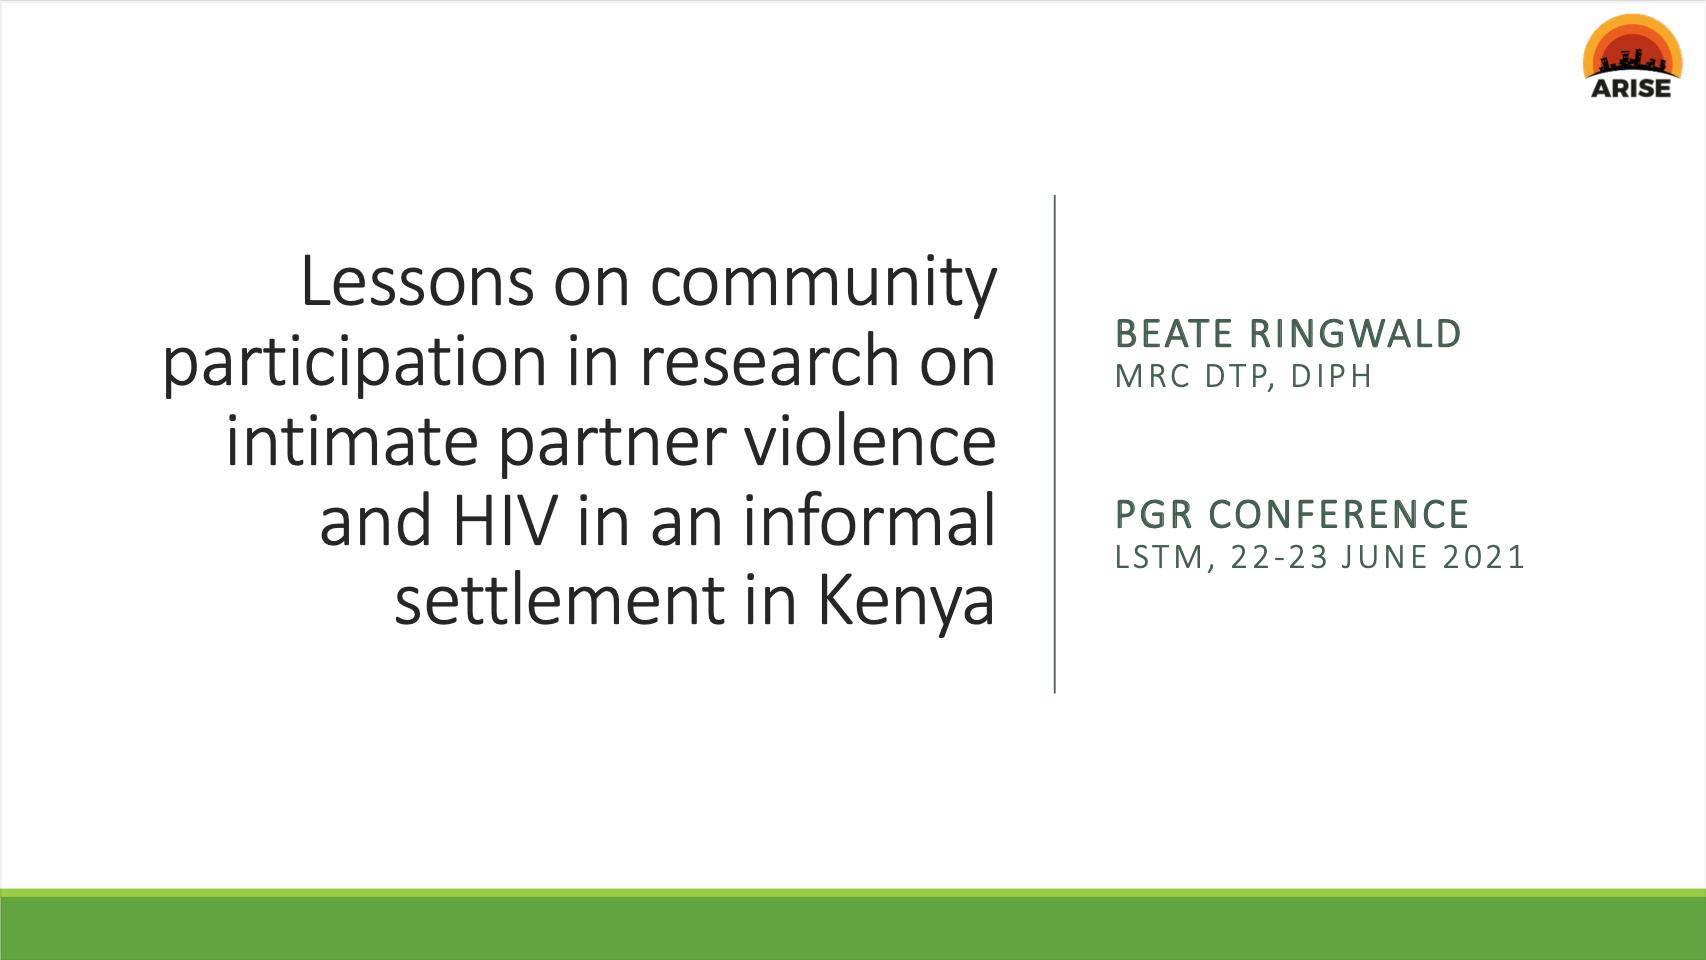 Lessons on community participation in research on intimate partner violence and HIV in an informal settlement in Kenya